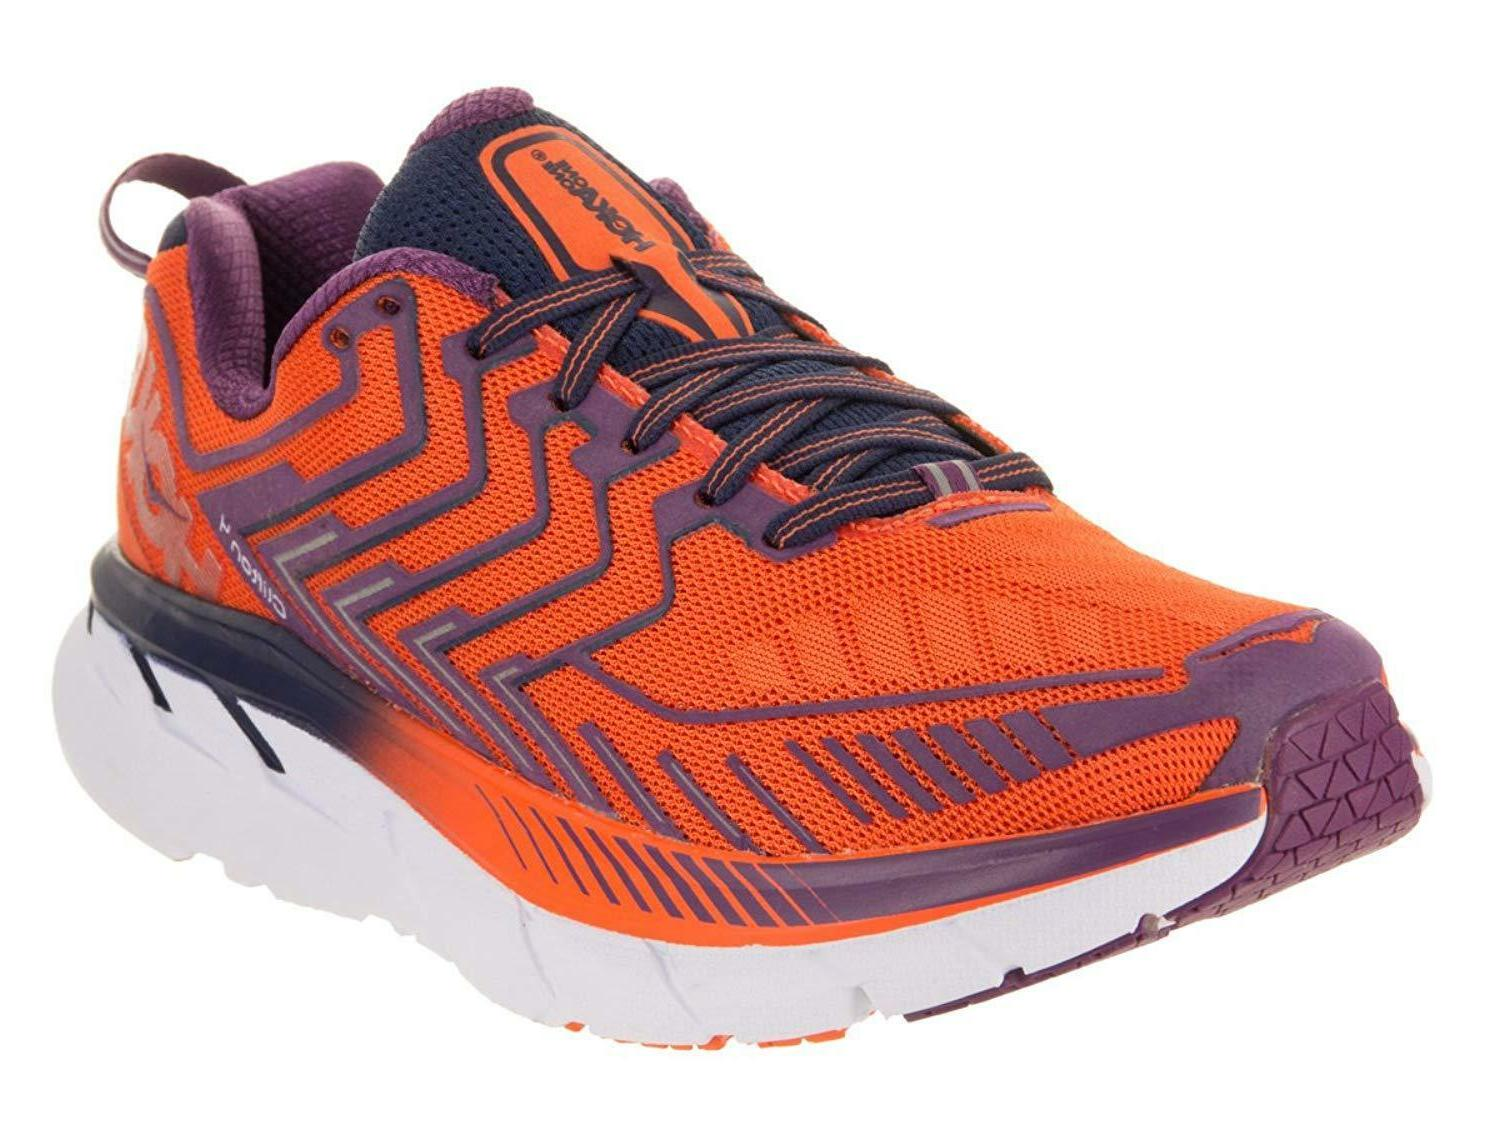 HOKA ONE ONE Women's Clifton 4 Red Orange/Peacoat Running Sh